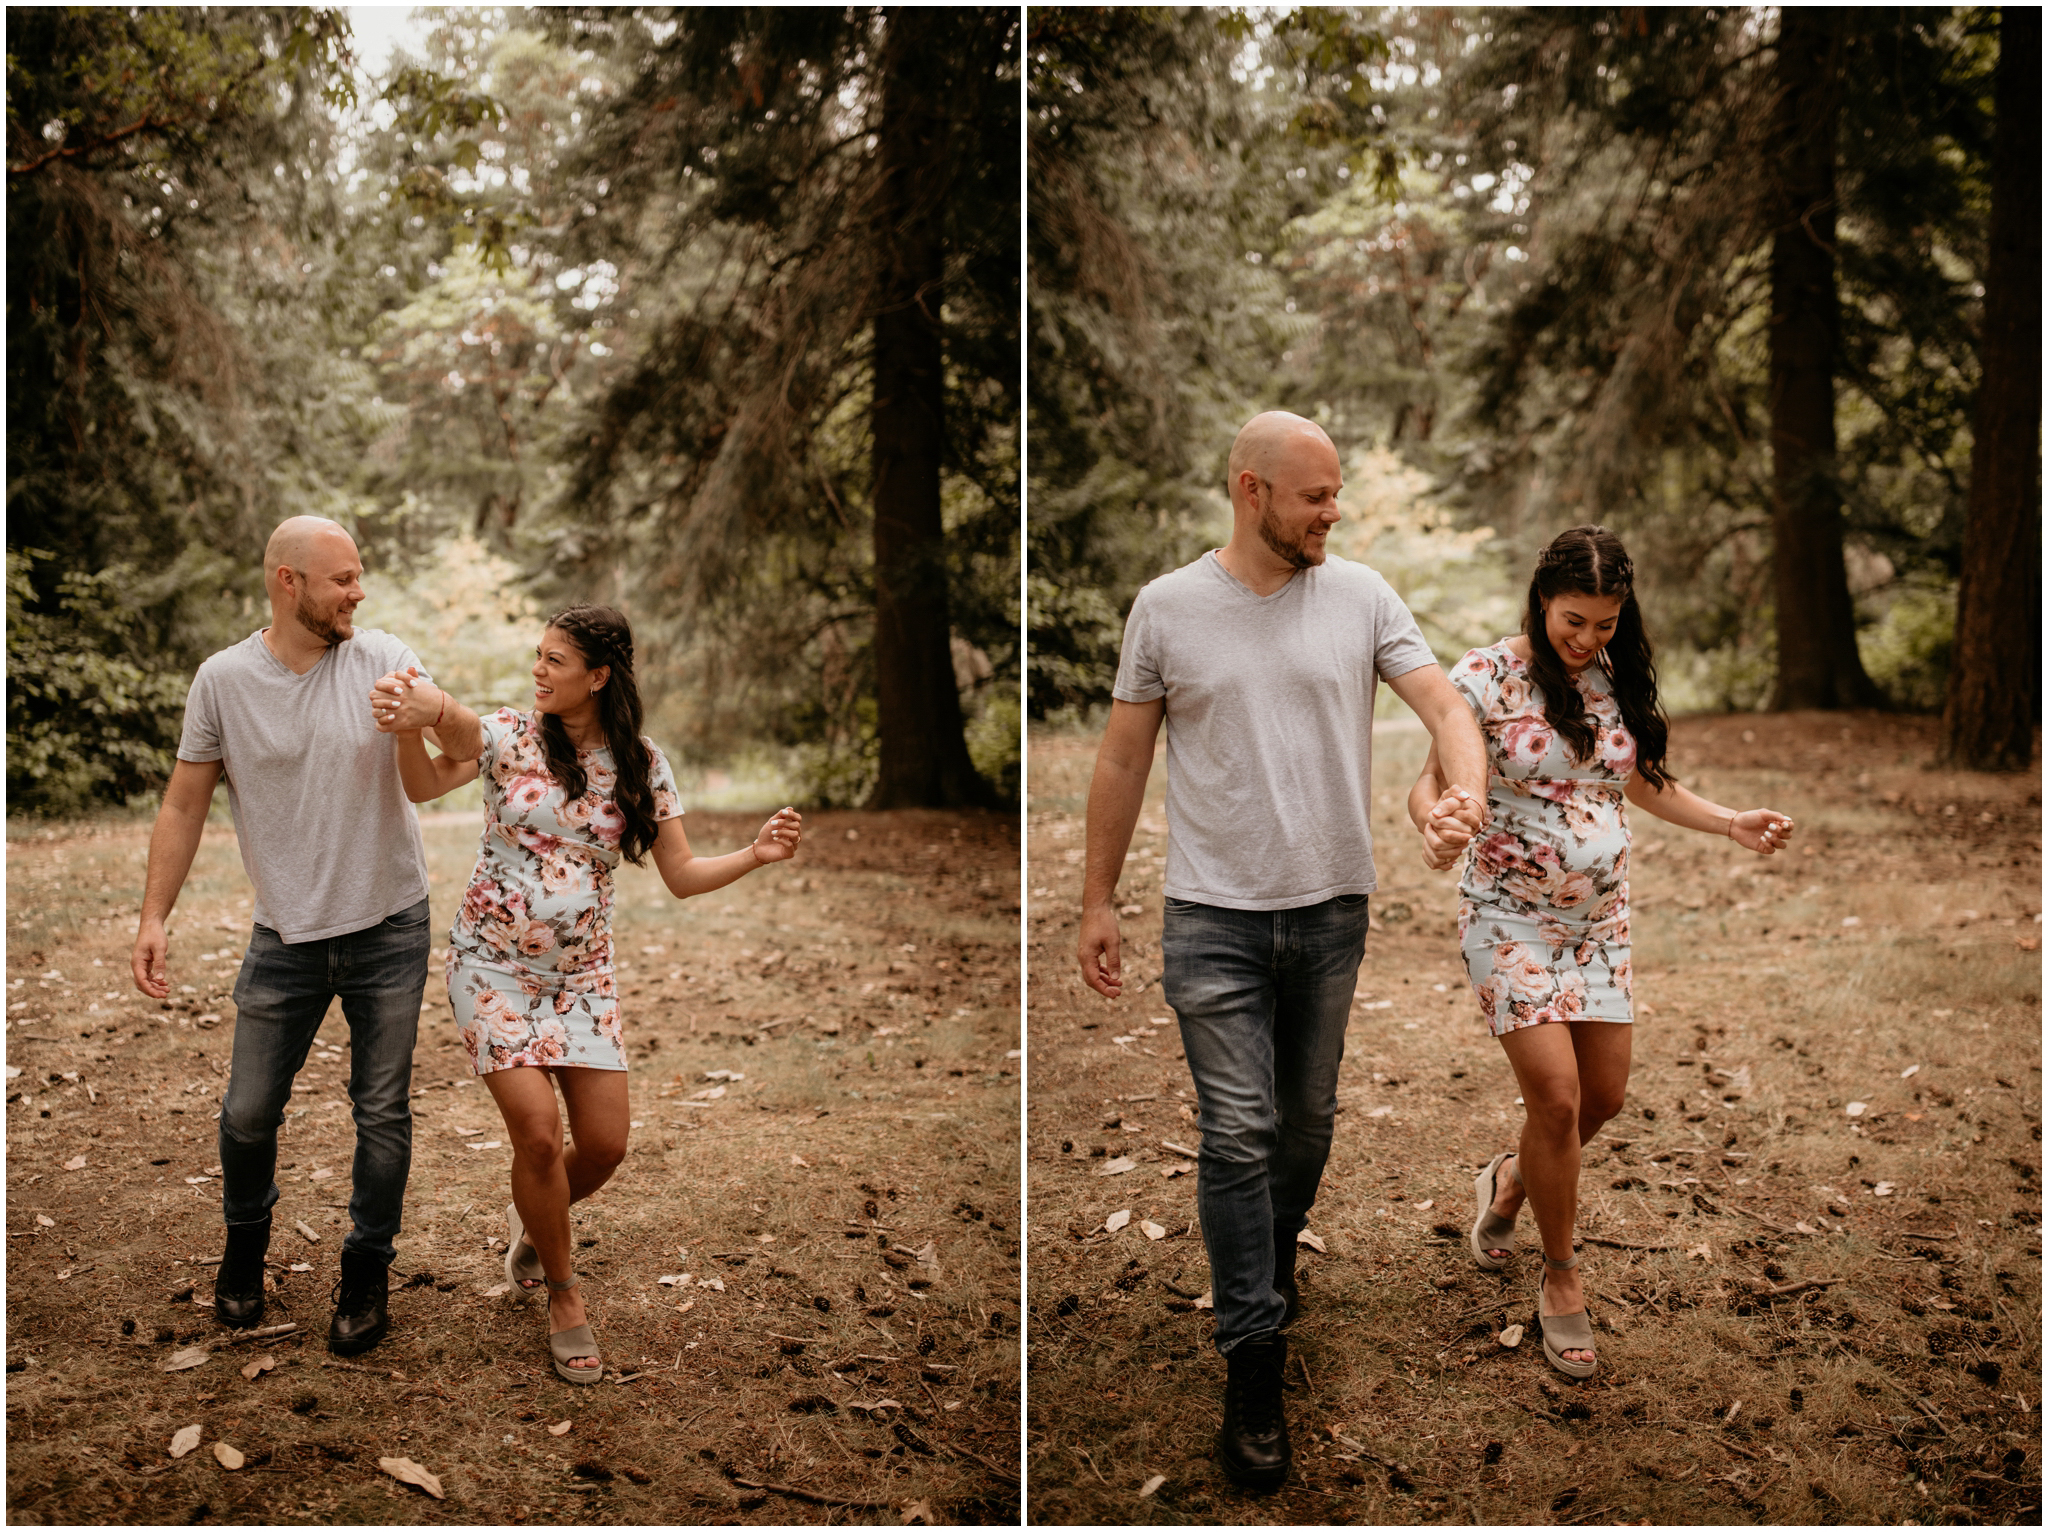 caitlin-jake-maternity-session-seattle-portrait-photographer-020.jpg